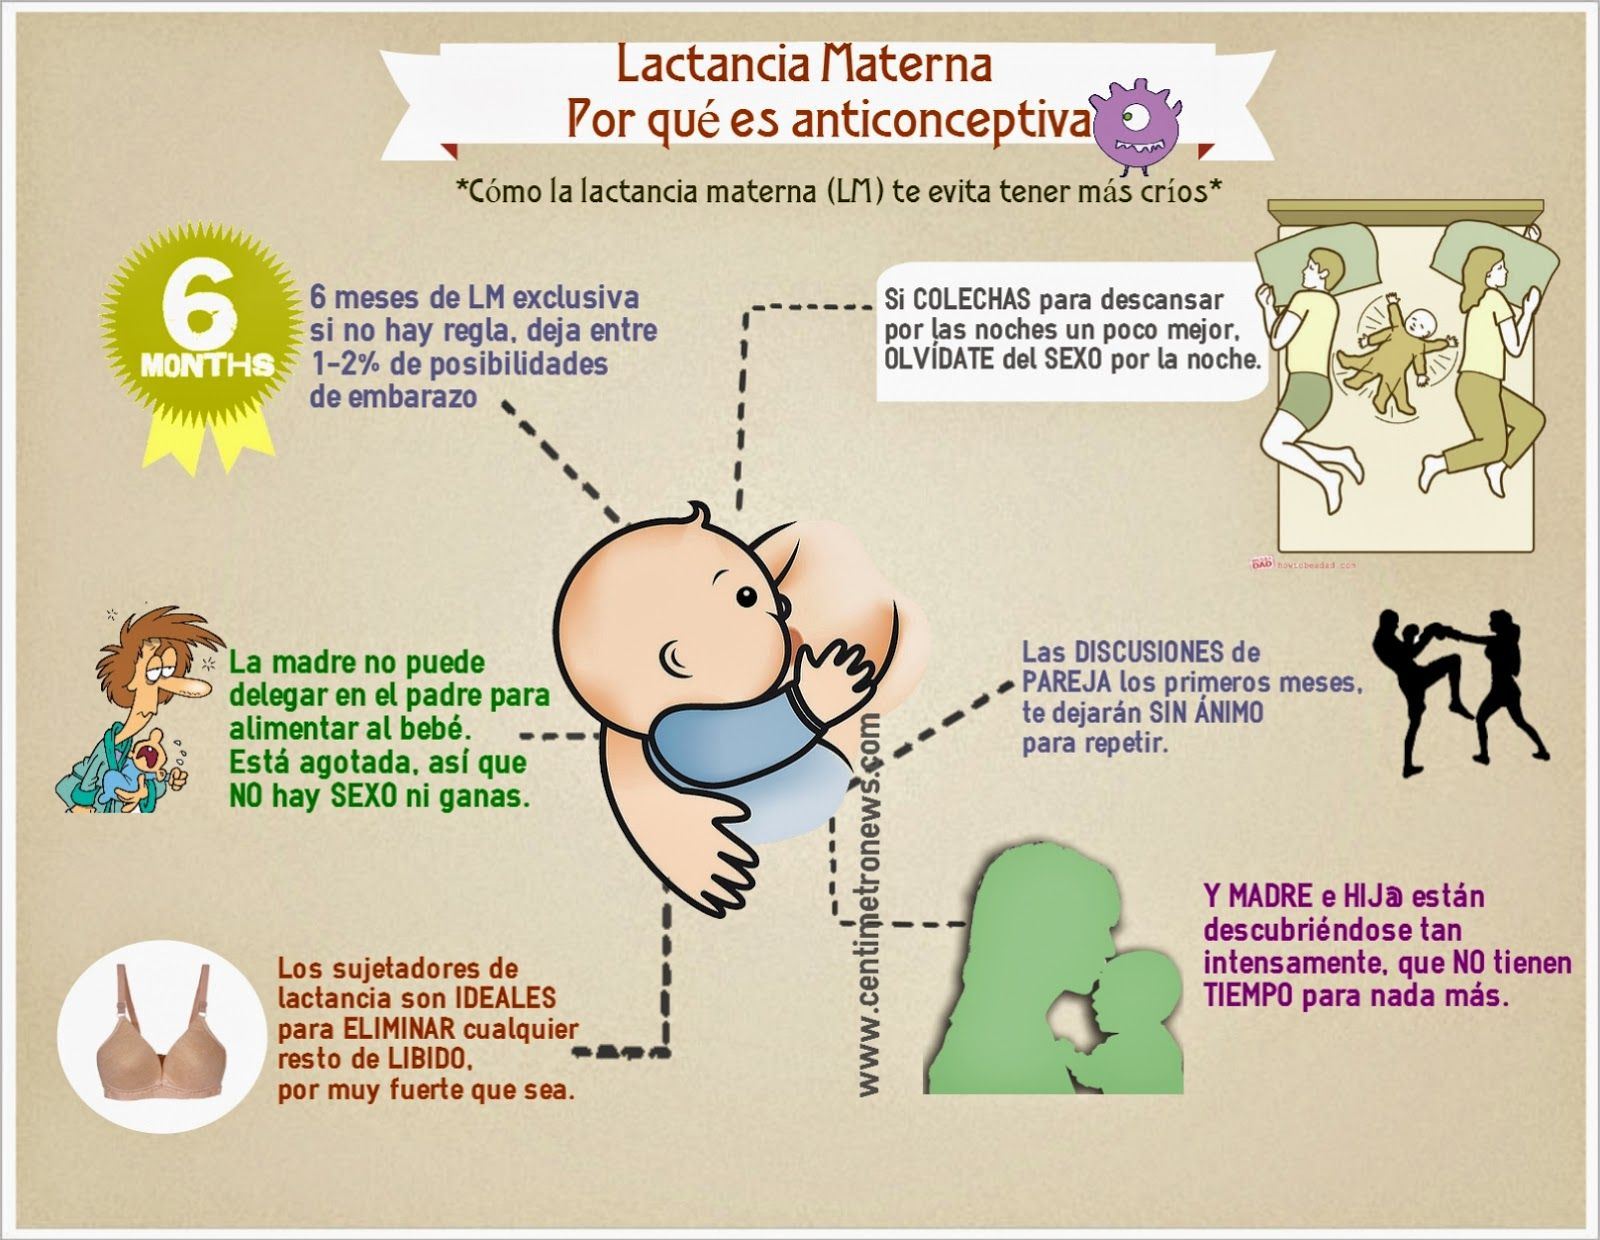 Lactancia Hasta Los 6 Meses Lactancia Materna Y Anticoncepción Breastfeeding